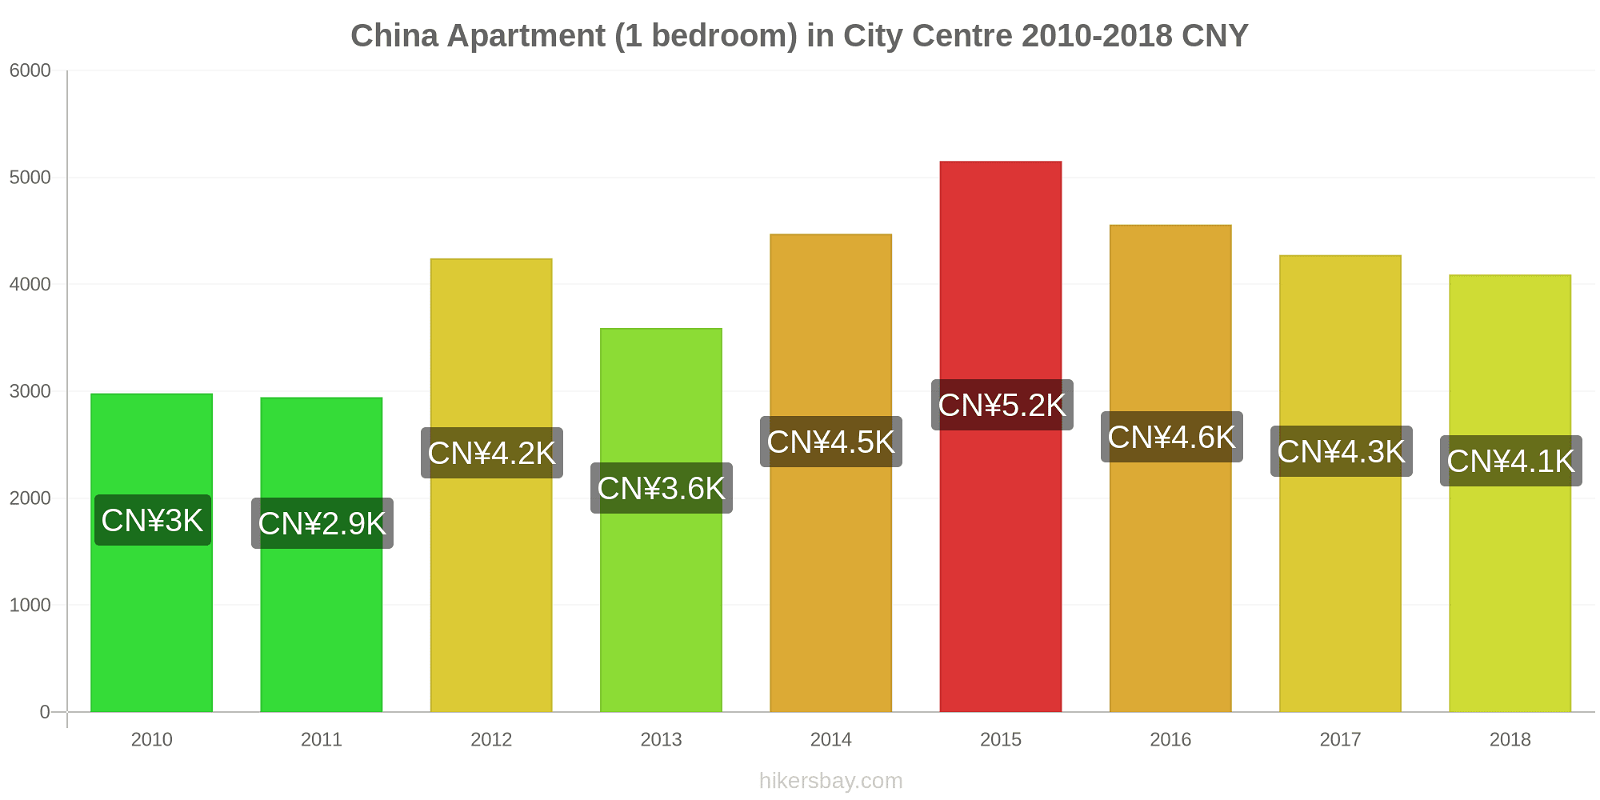 China price changes Apartment (1 bedroom) in City Centre hikersbay.com